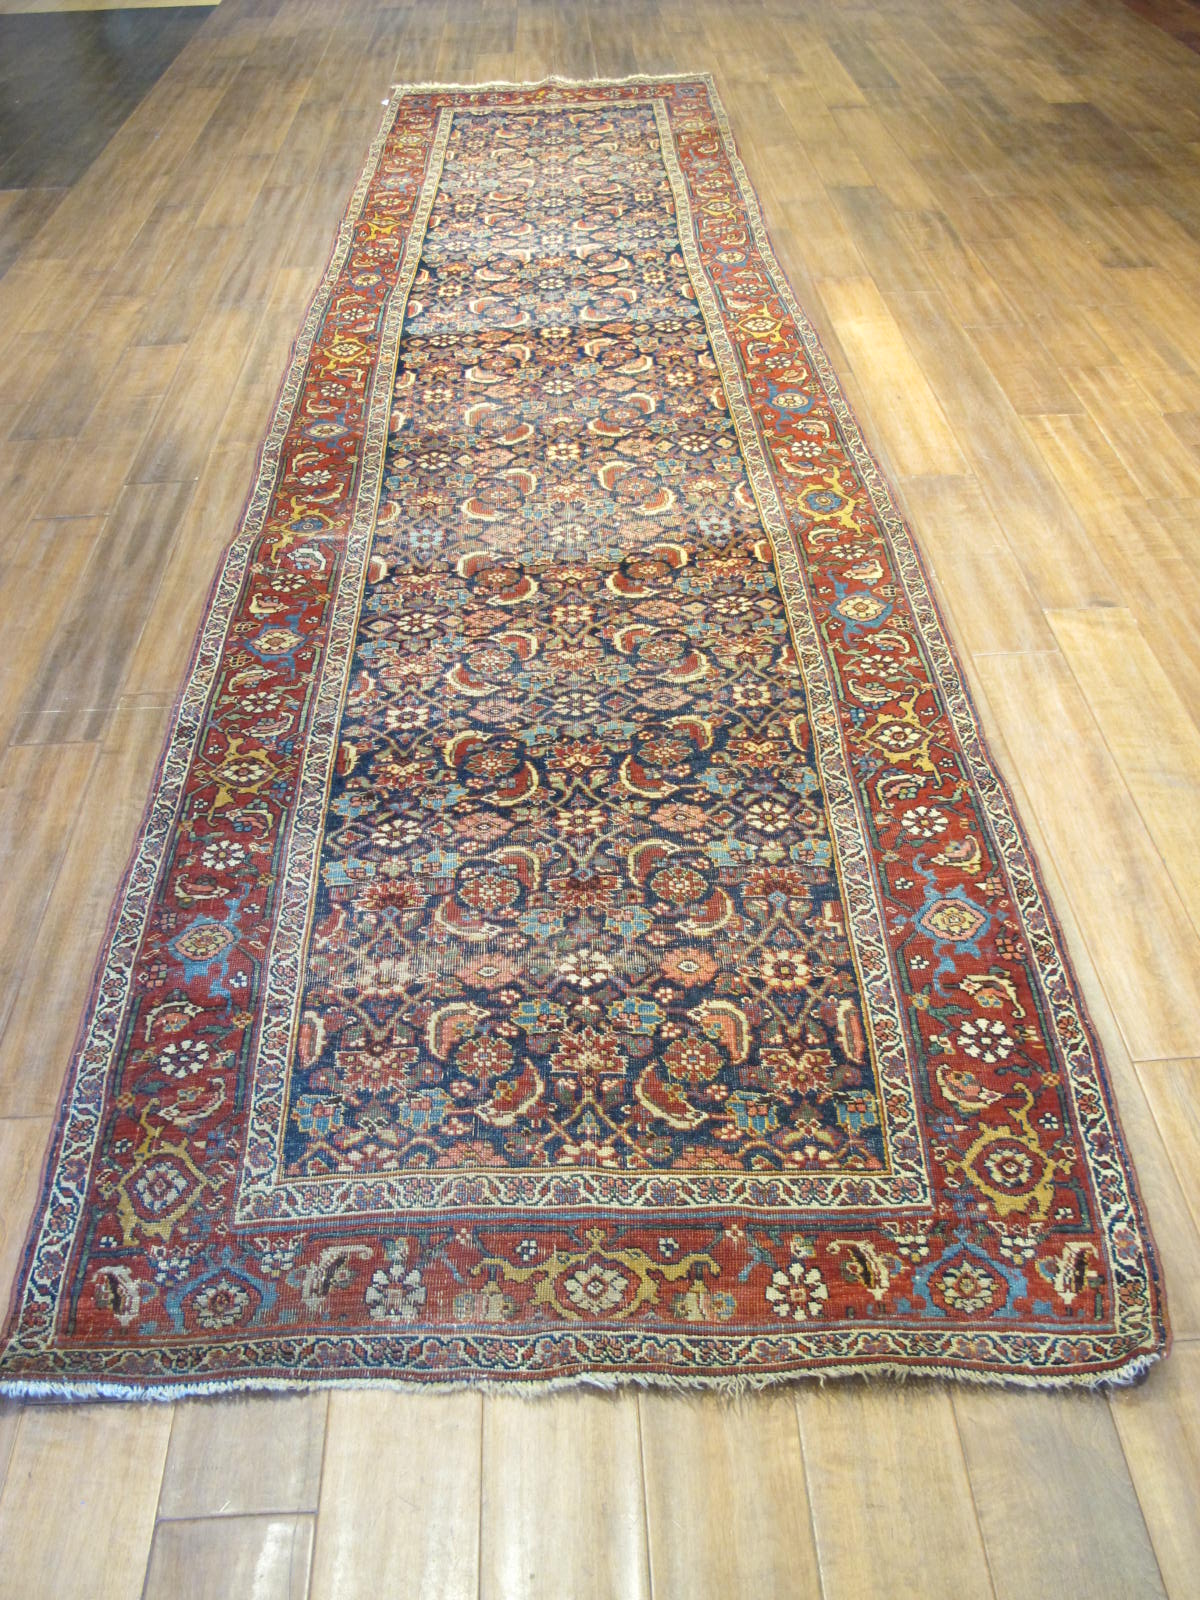 13078 antique persian bidjar runner 3,6x13,4 (2)